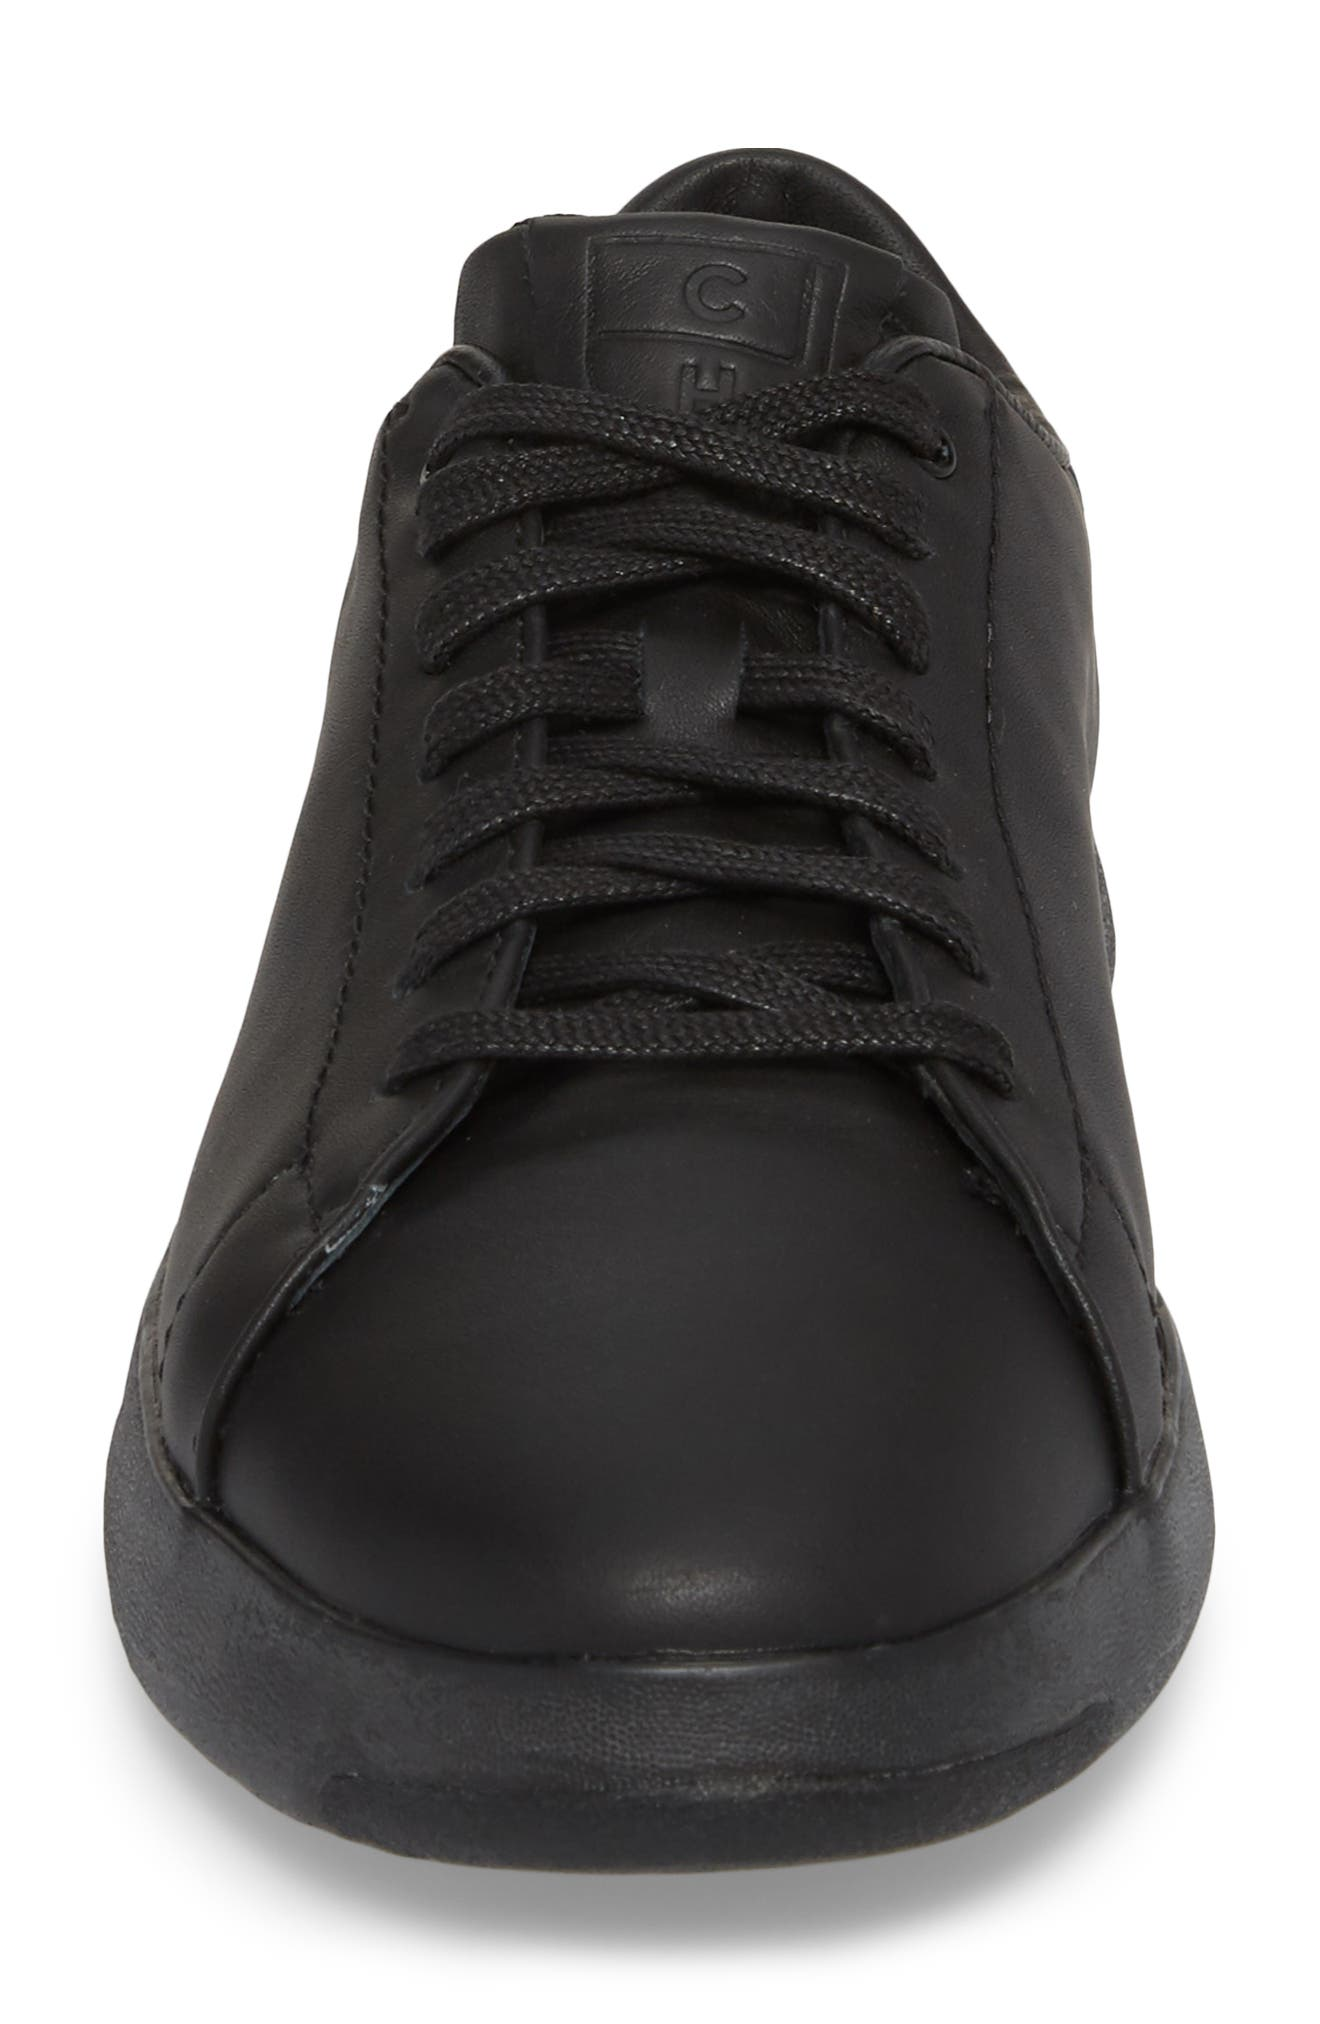 COLE HAAN, GrandPro Tennis Sneaker, Alternate thumbnail 4, color, BLACK/ BLACK LEATHER